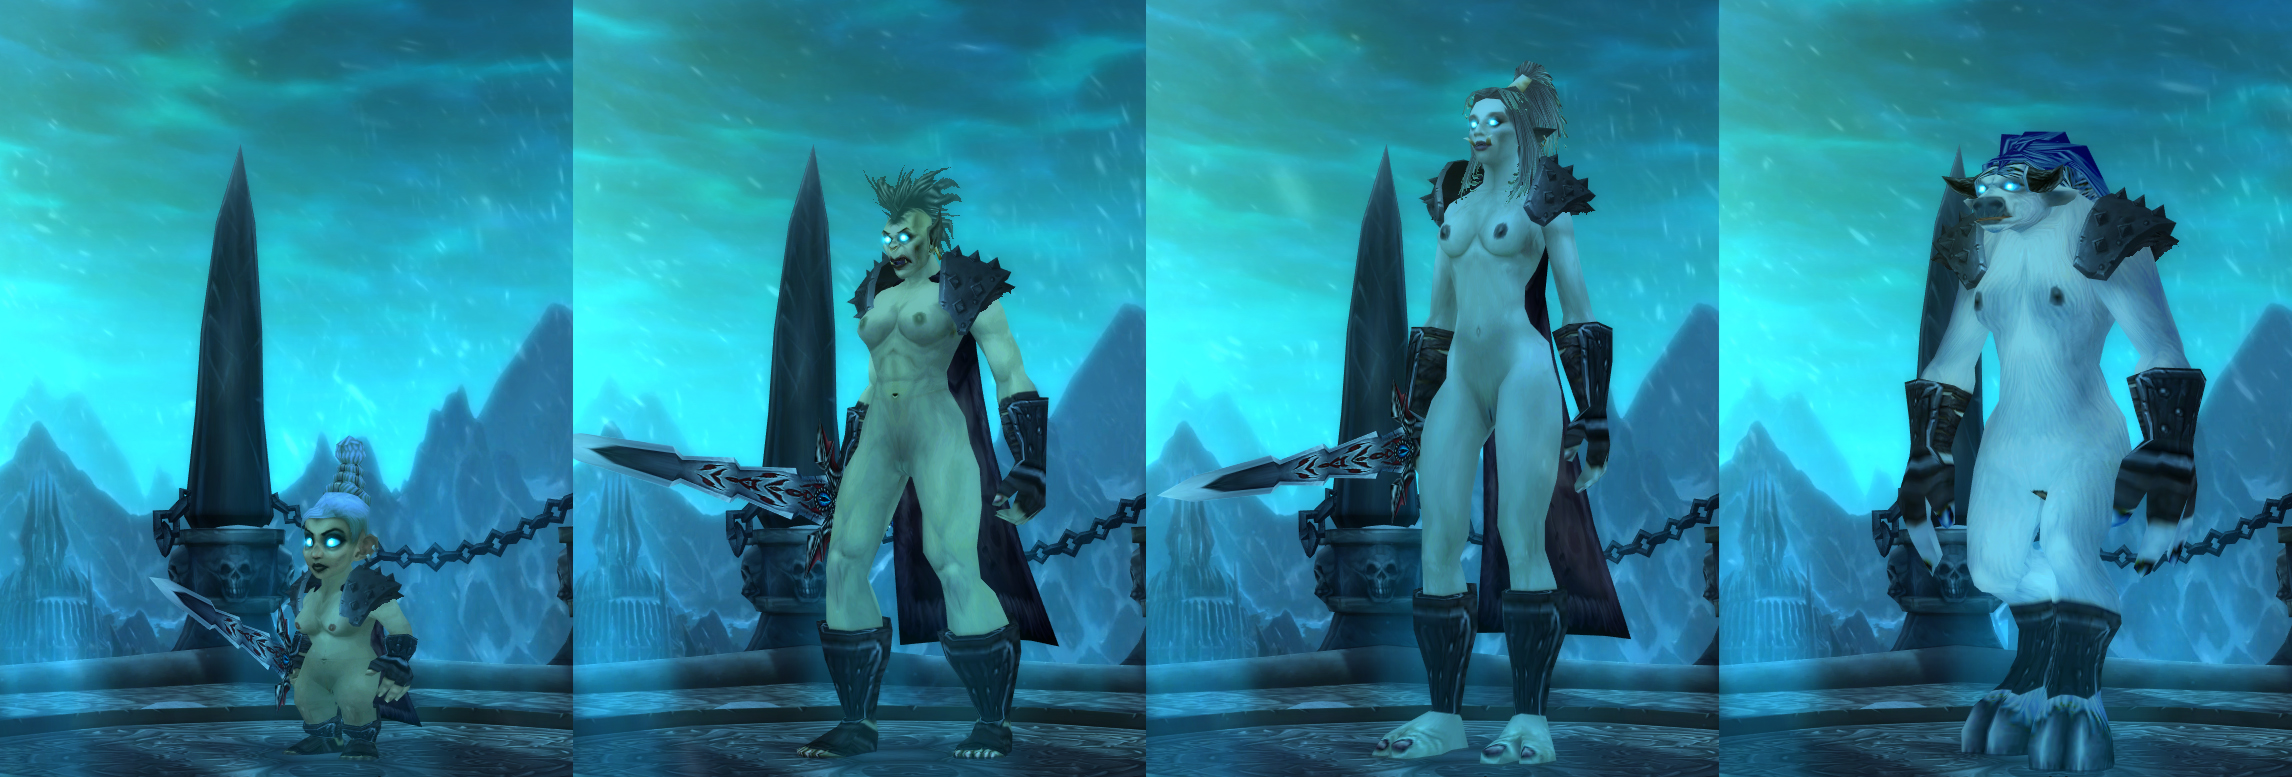 Naked addon world of warcraft nude sluts